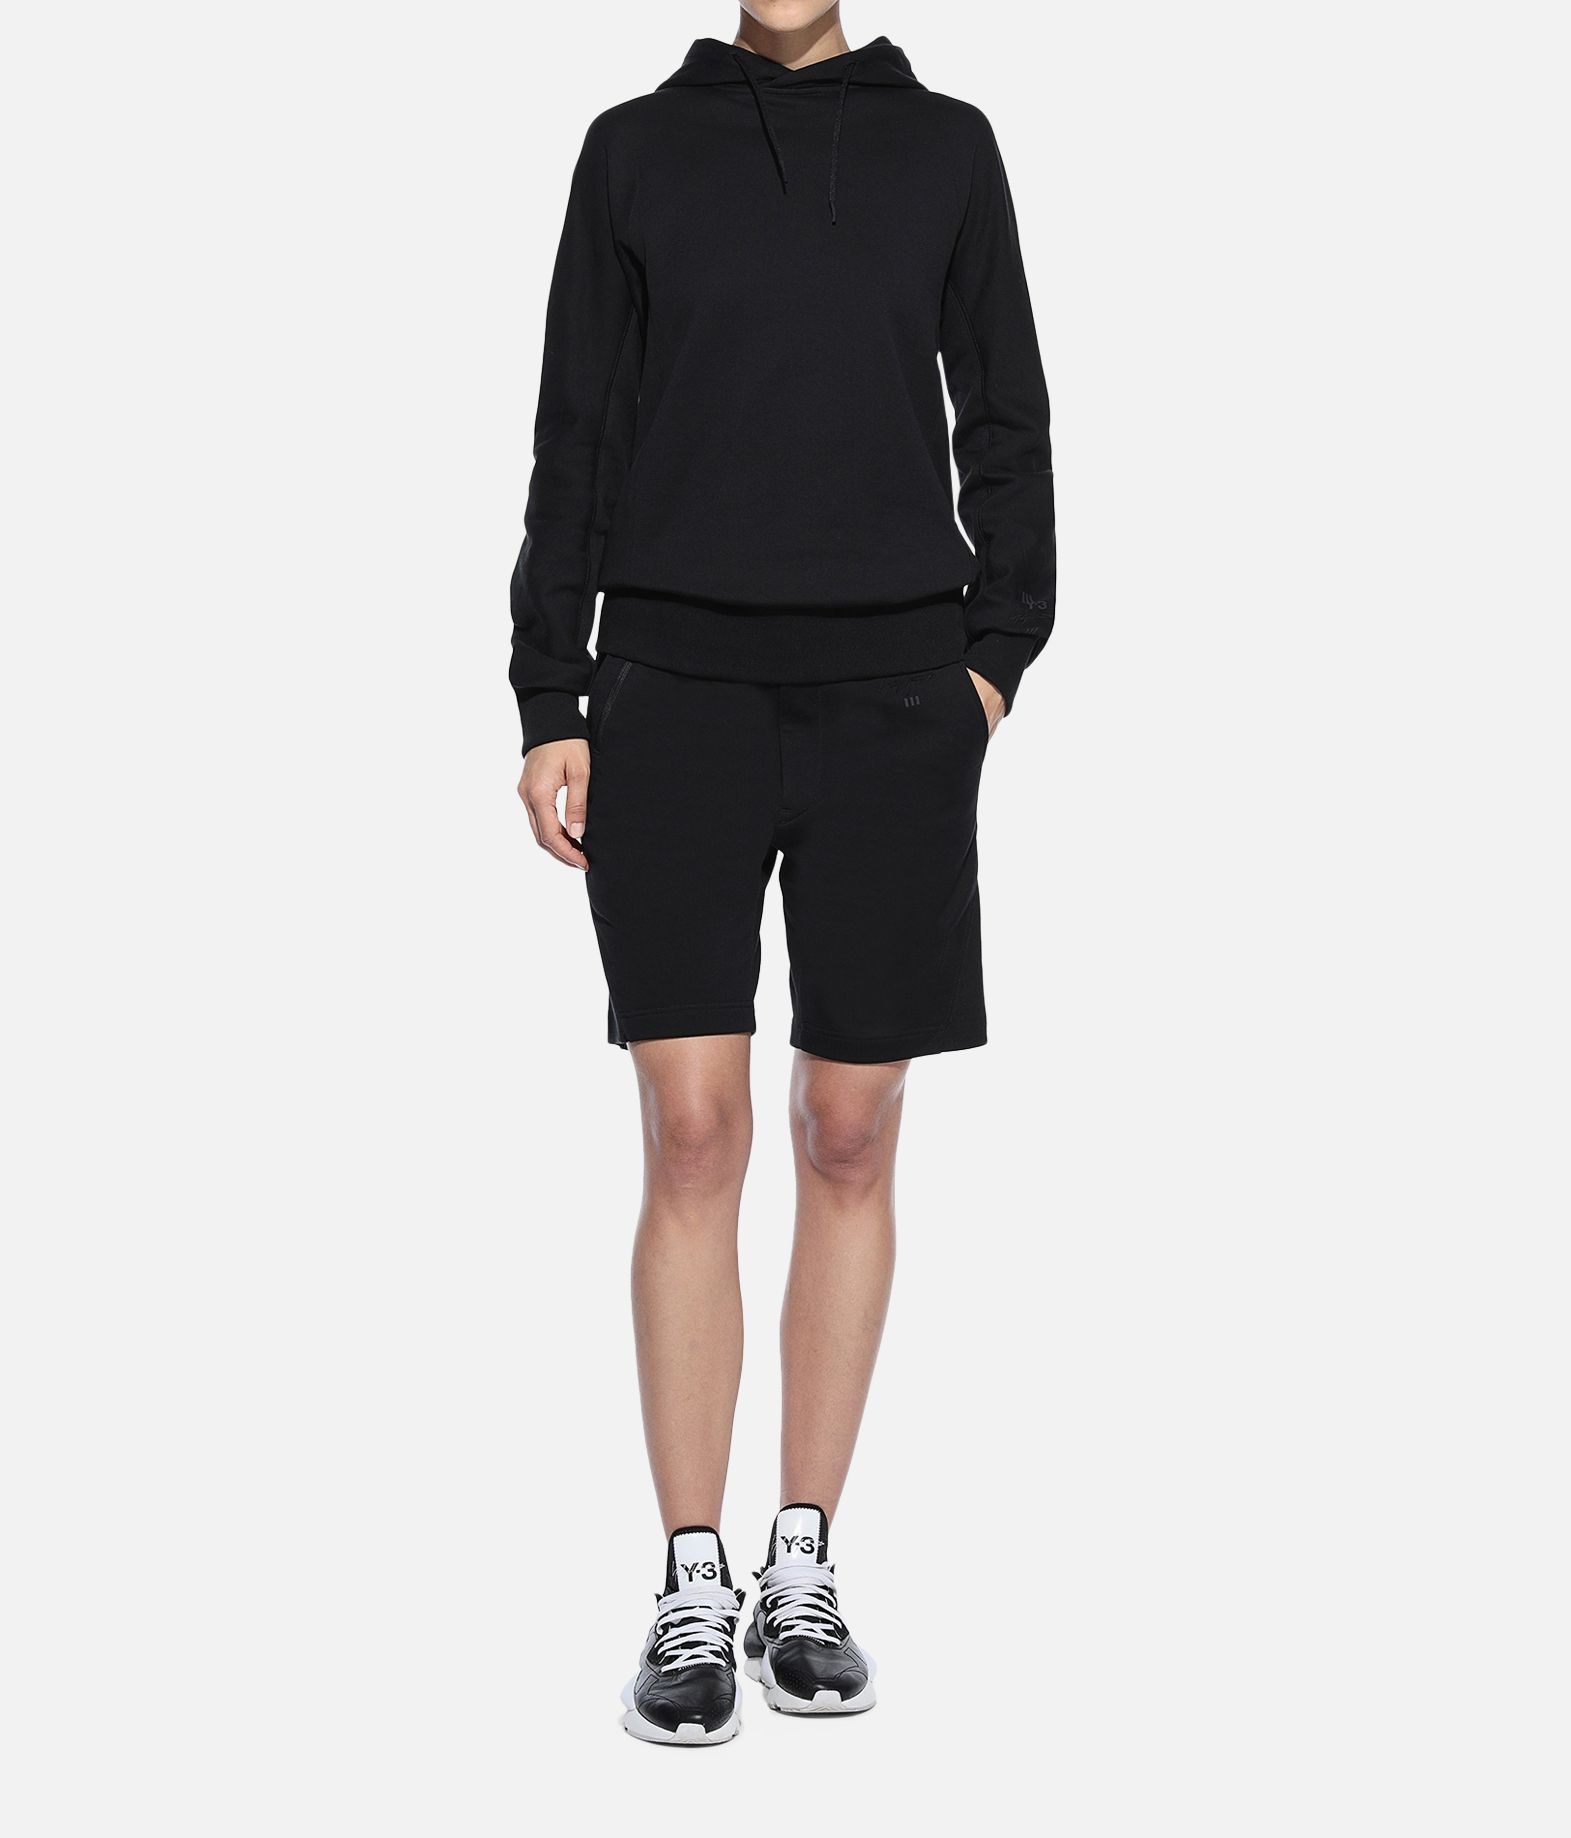 Y-3 Y-3 Classic Hoodie Hooded sweatshirt Woman a